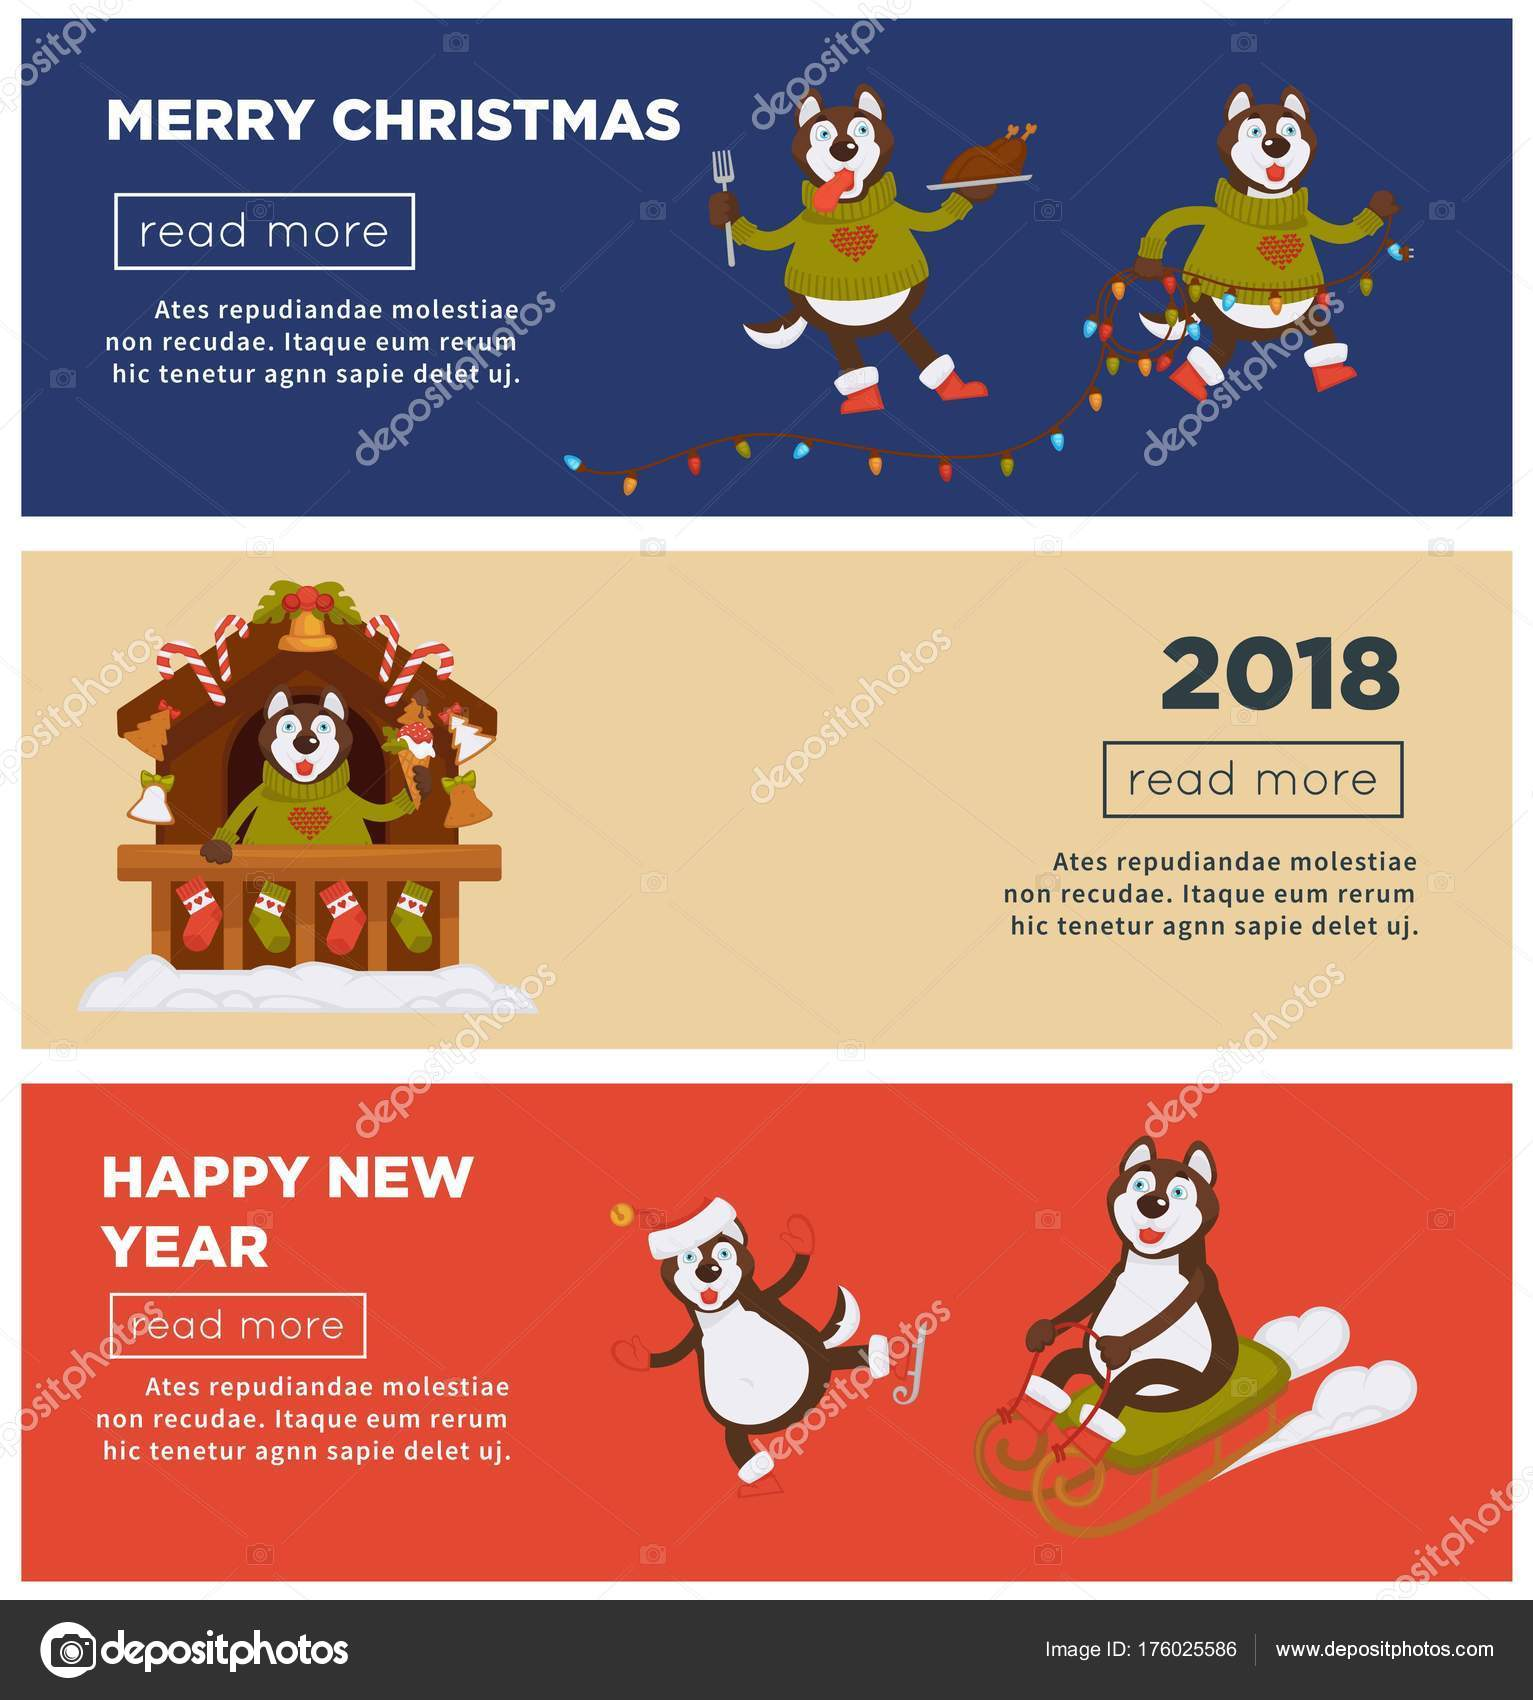 Beautiful Merry Christmas And Happy New Year 2018 Dog Cartoon Greeting Web Banners  Design Template. Dog Funny Character Celebrating Holidays With Xmas Tree  Decoration ...